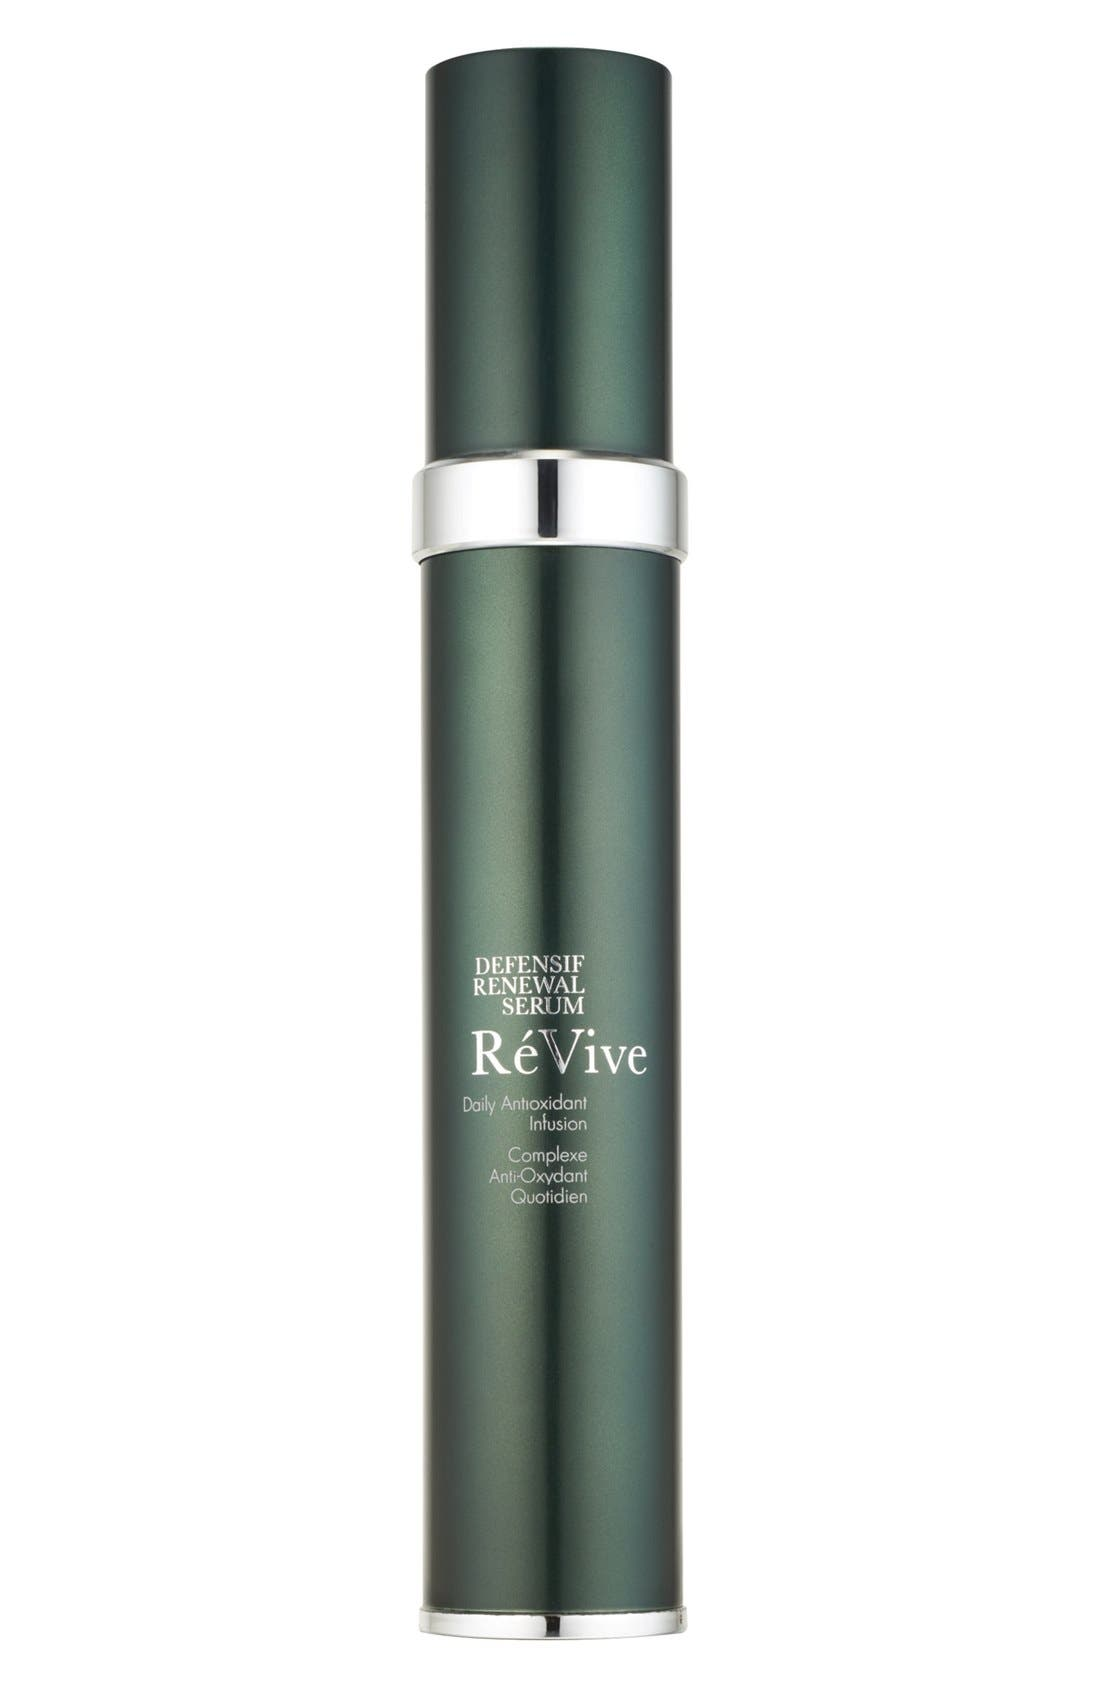 Defensif Renewal Serum,                         Main,                         color, 000